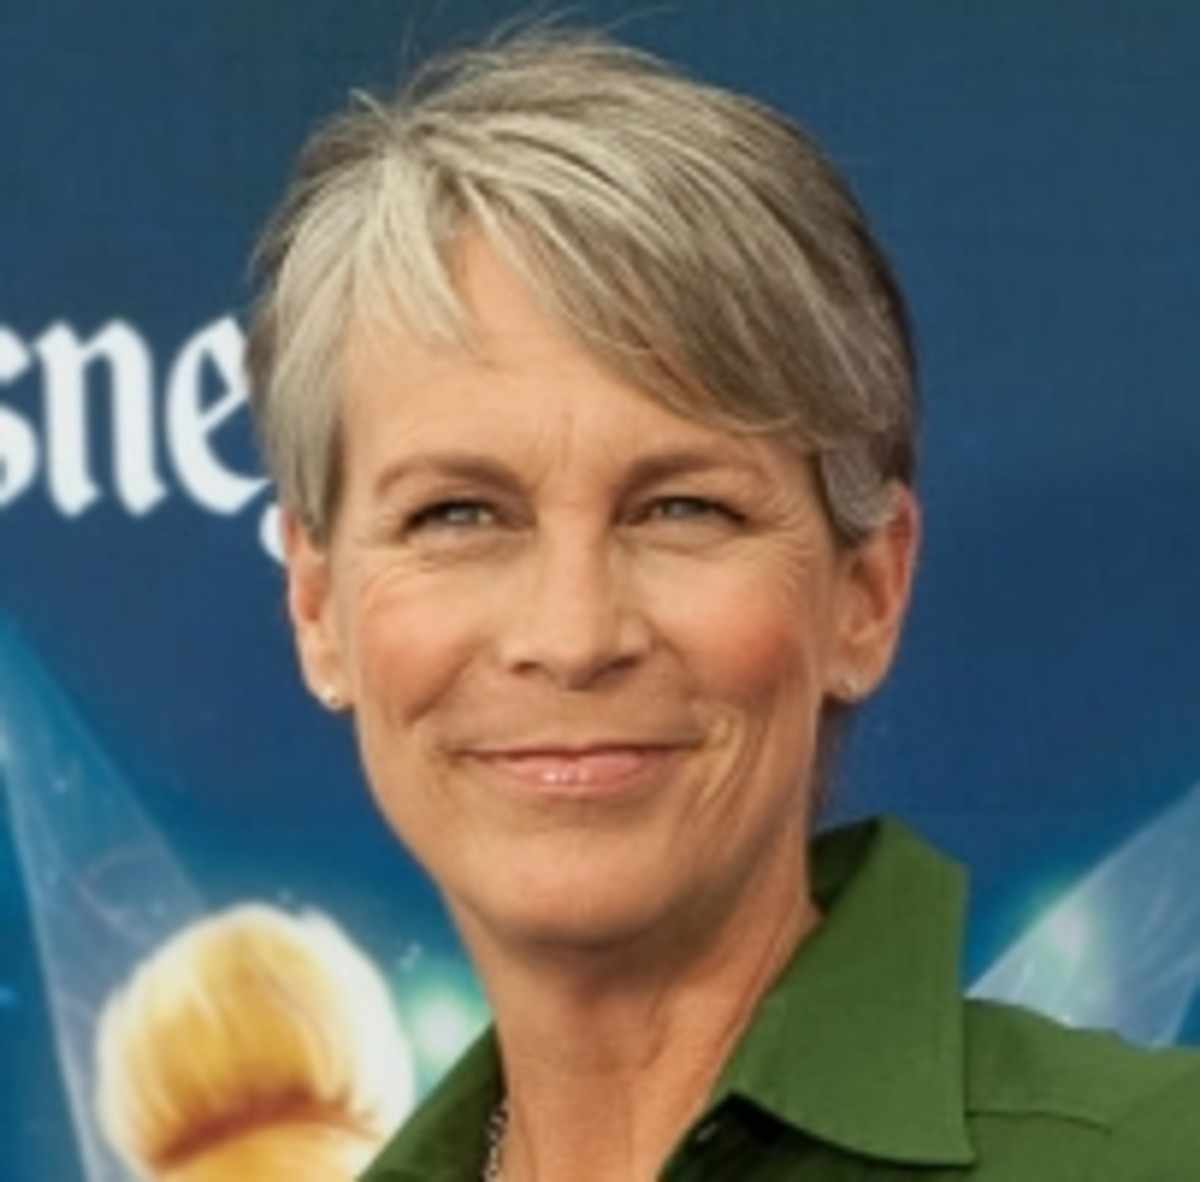 Jamie Lee Curtis, married since 1984